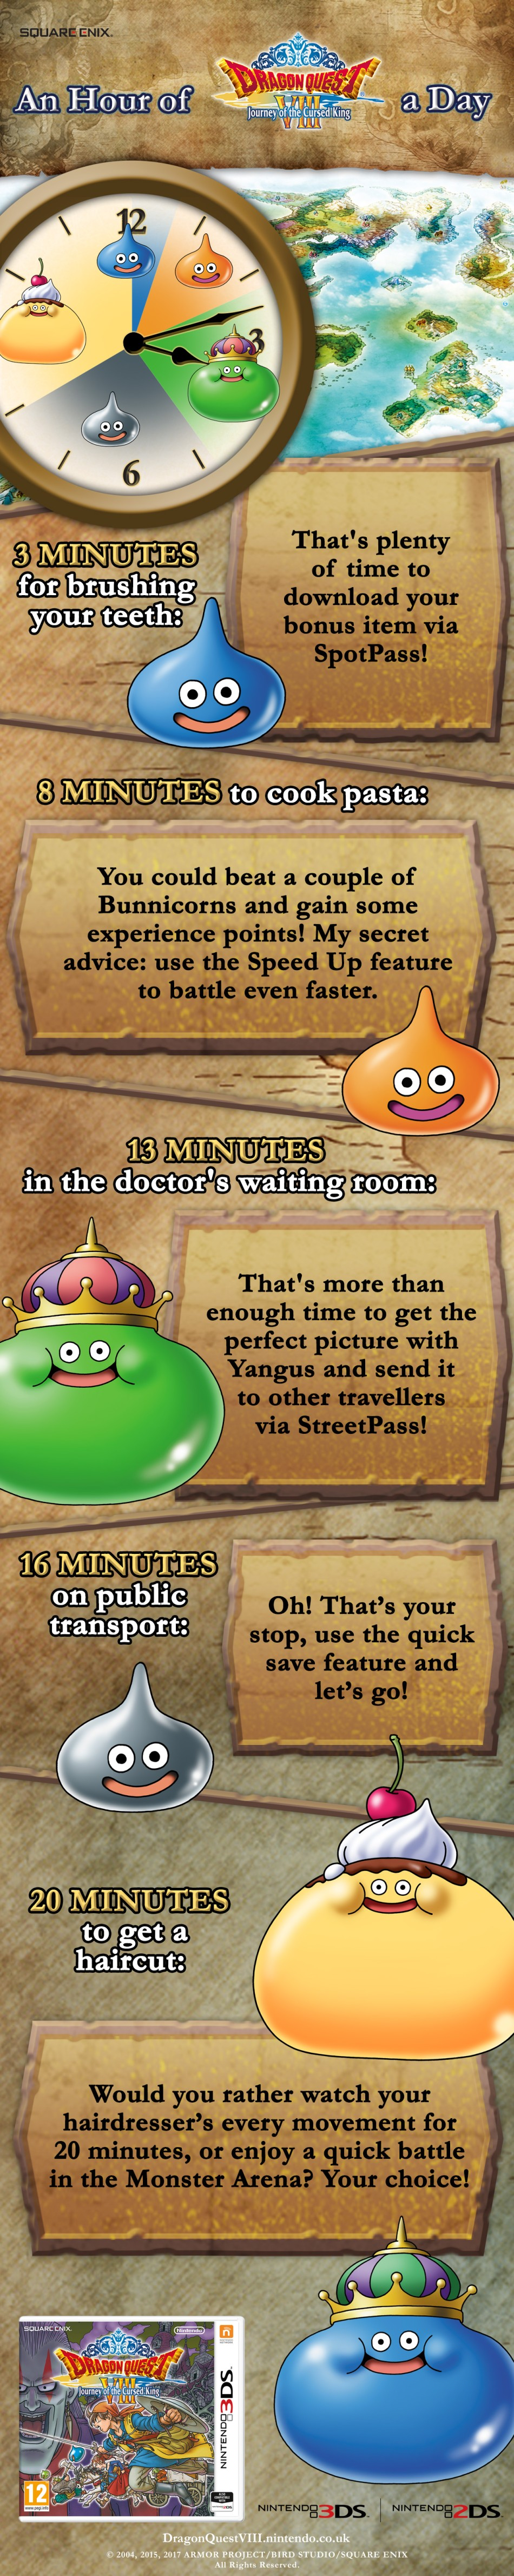 CI_DragonQuest_Infographic_AnHourADay_enGB.jpg